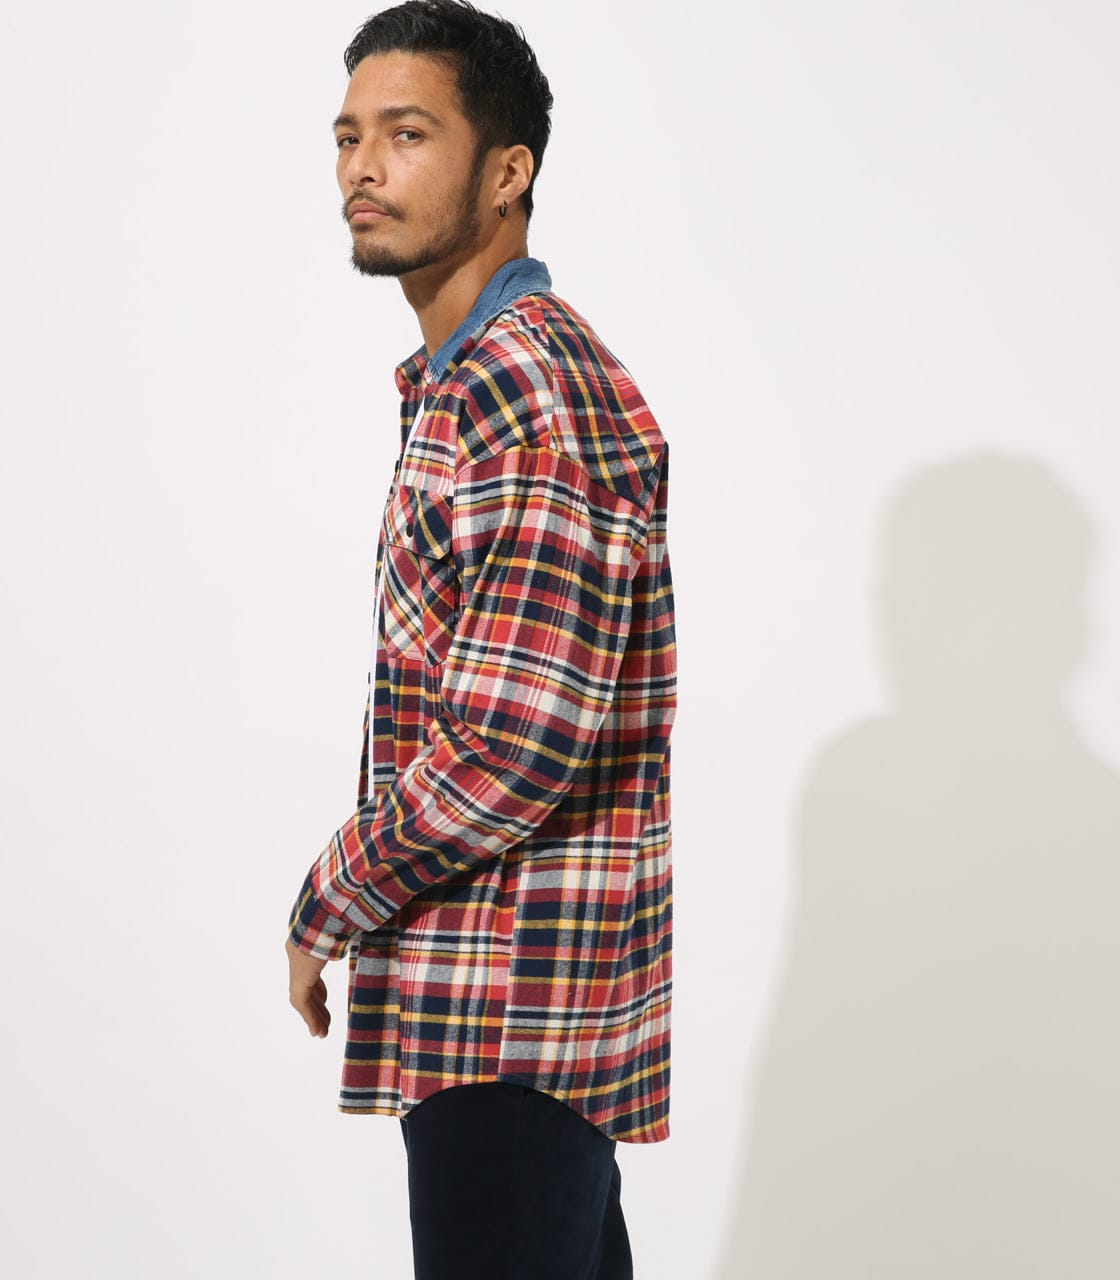 【AZUL BY MOUSSY】DENIM COLLAR BIG CHECK SHIRT 詳細画像 柄RED 2